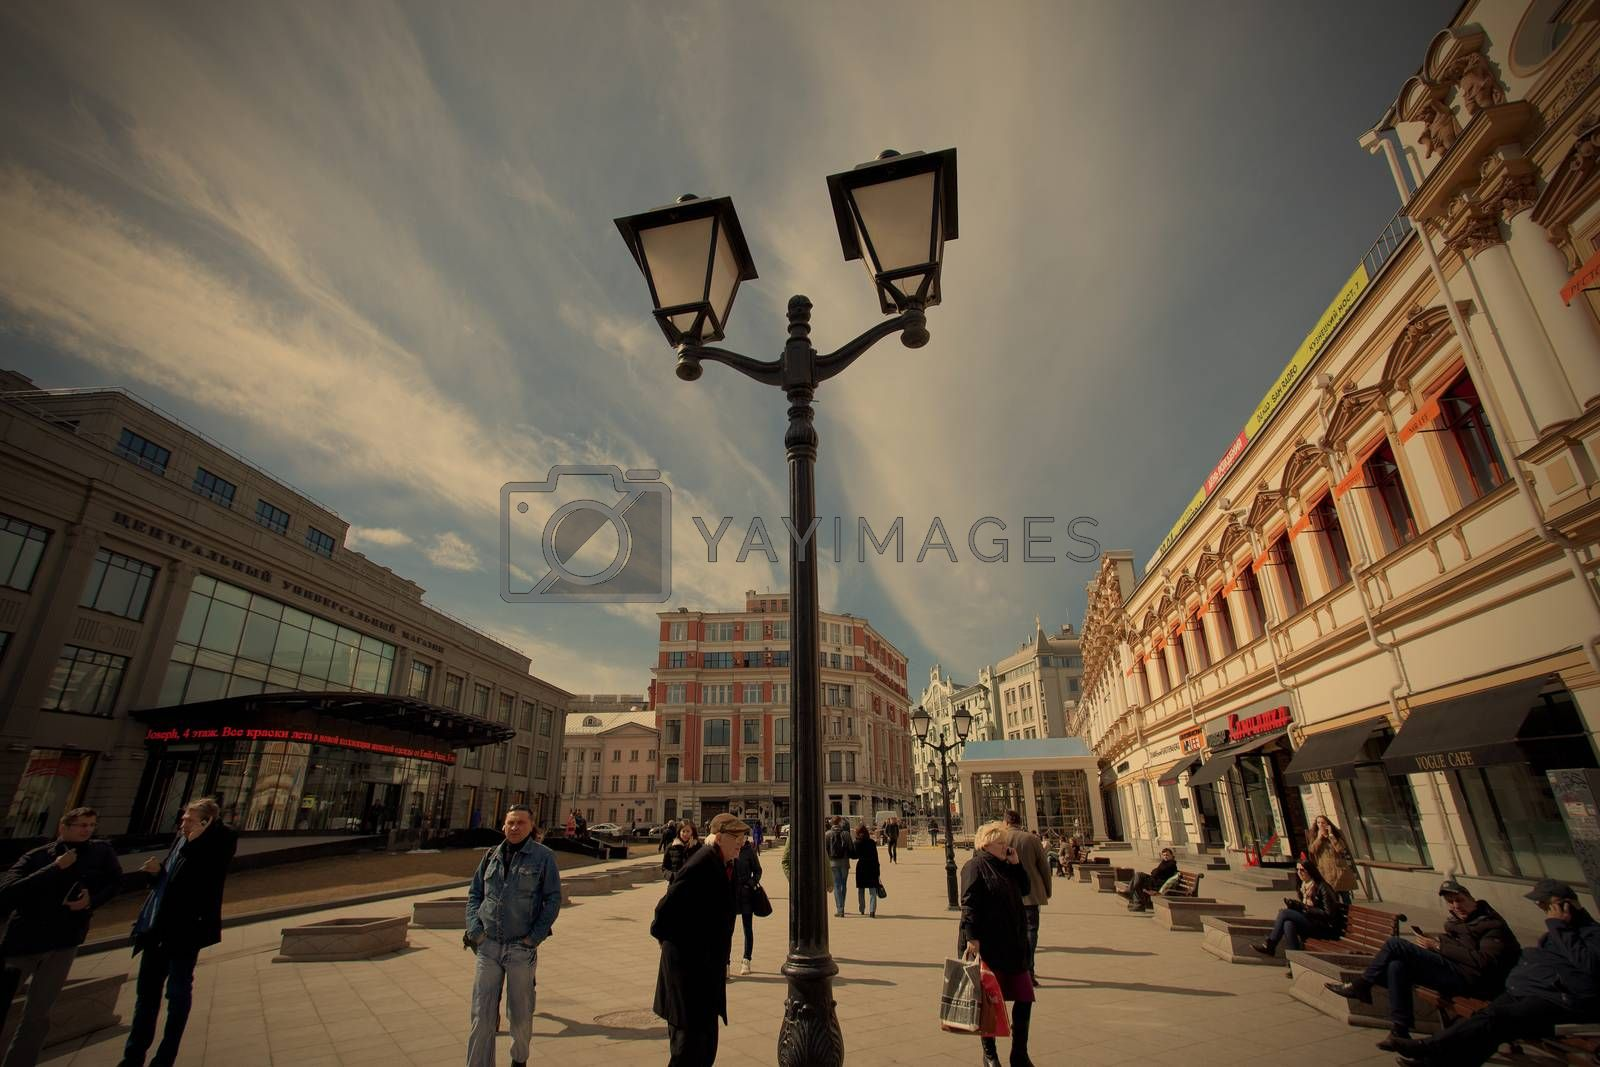 Moscow, Russia, Kuznetsky Most street at spring morning, 2014, april, instagram image style, editorial use only